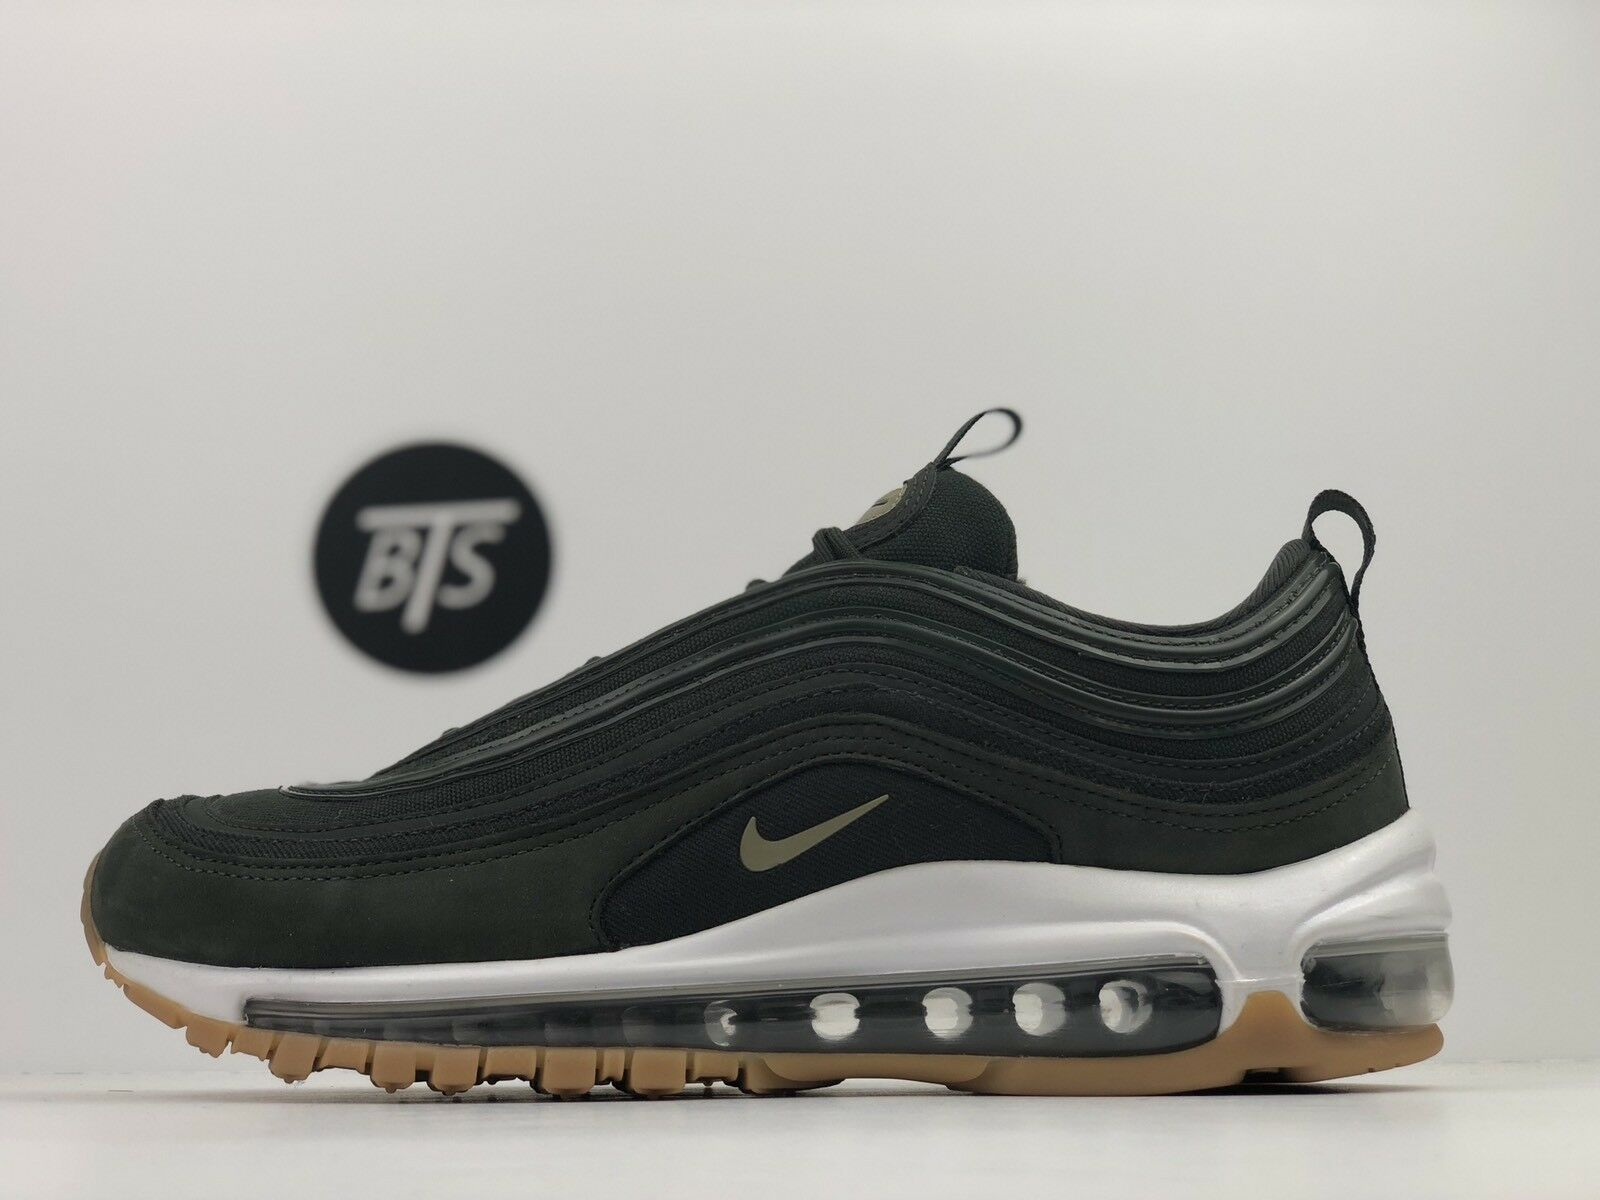 "Women's Nike Air Max 97 UL ""Sequoia"" Size-7.5 Neutral Olive Green (AJ2248 300)"